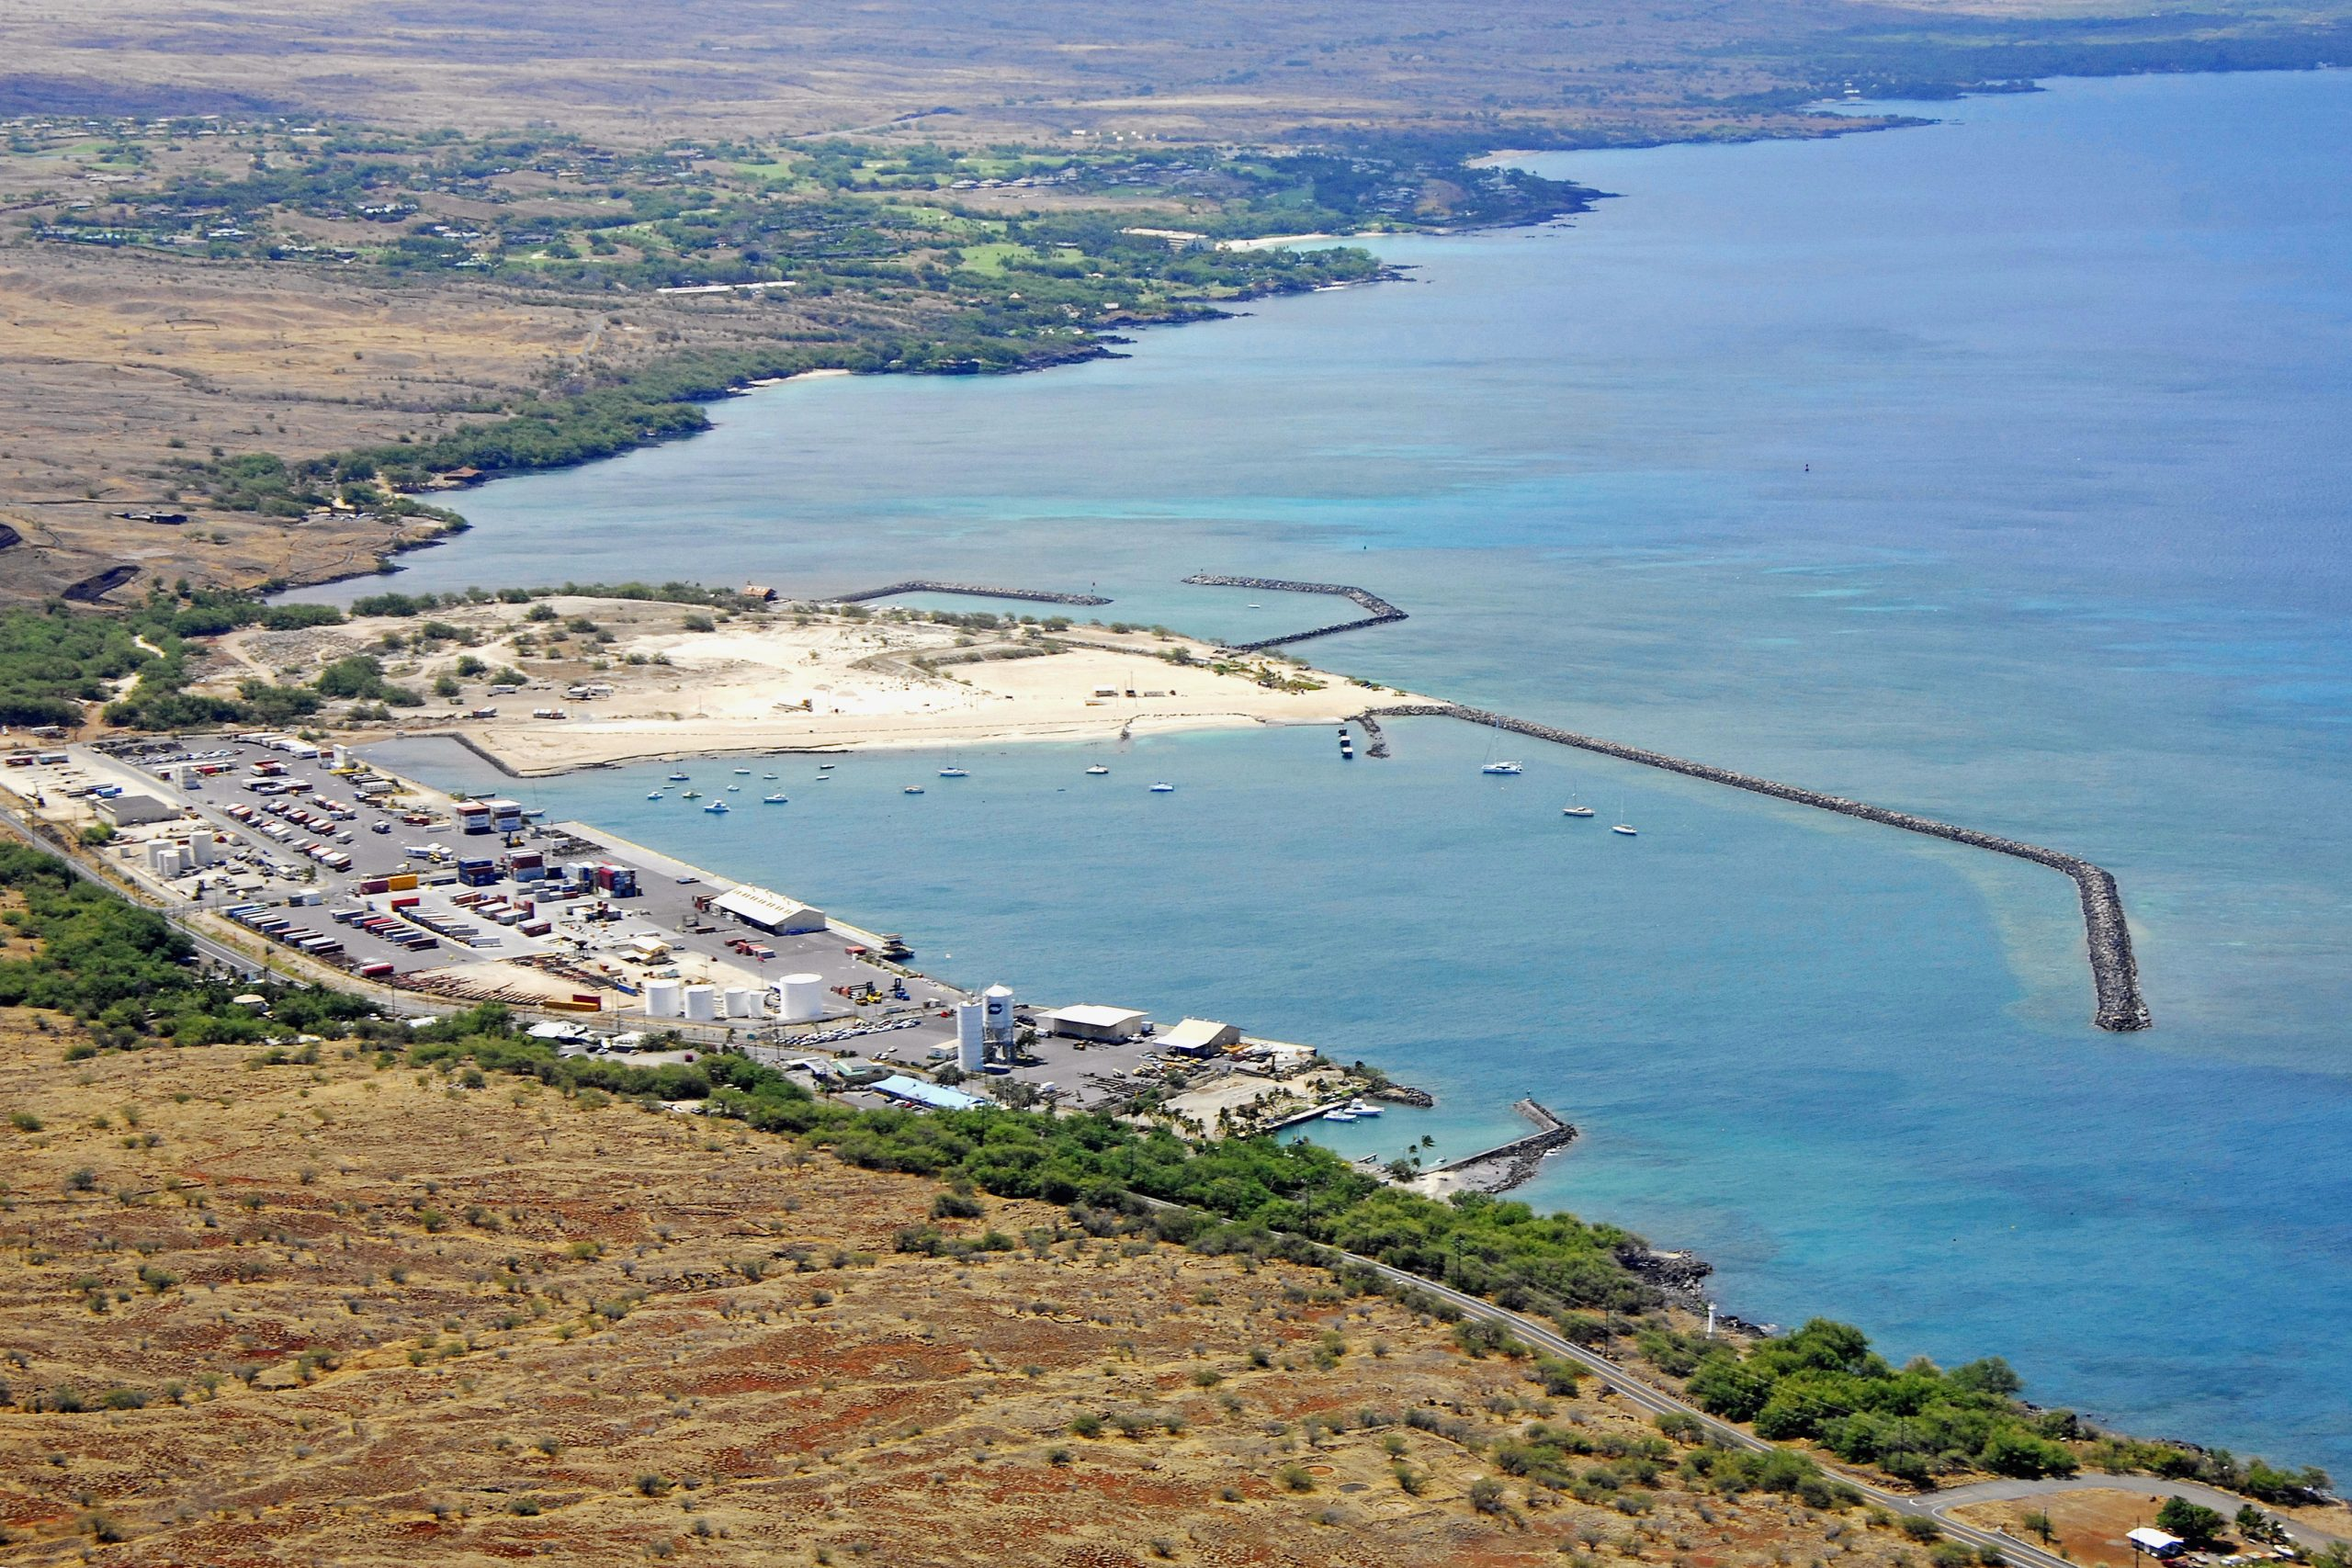 Kawaihae Harbor scaled Waterworld: The Story Behind One Of The Biggest Hollywood Disasters Of All Time